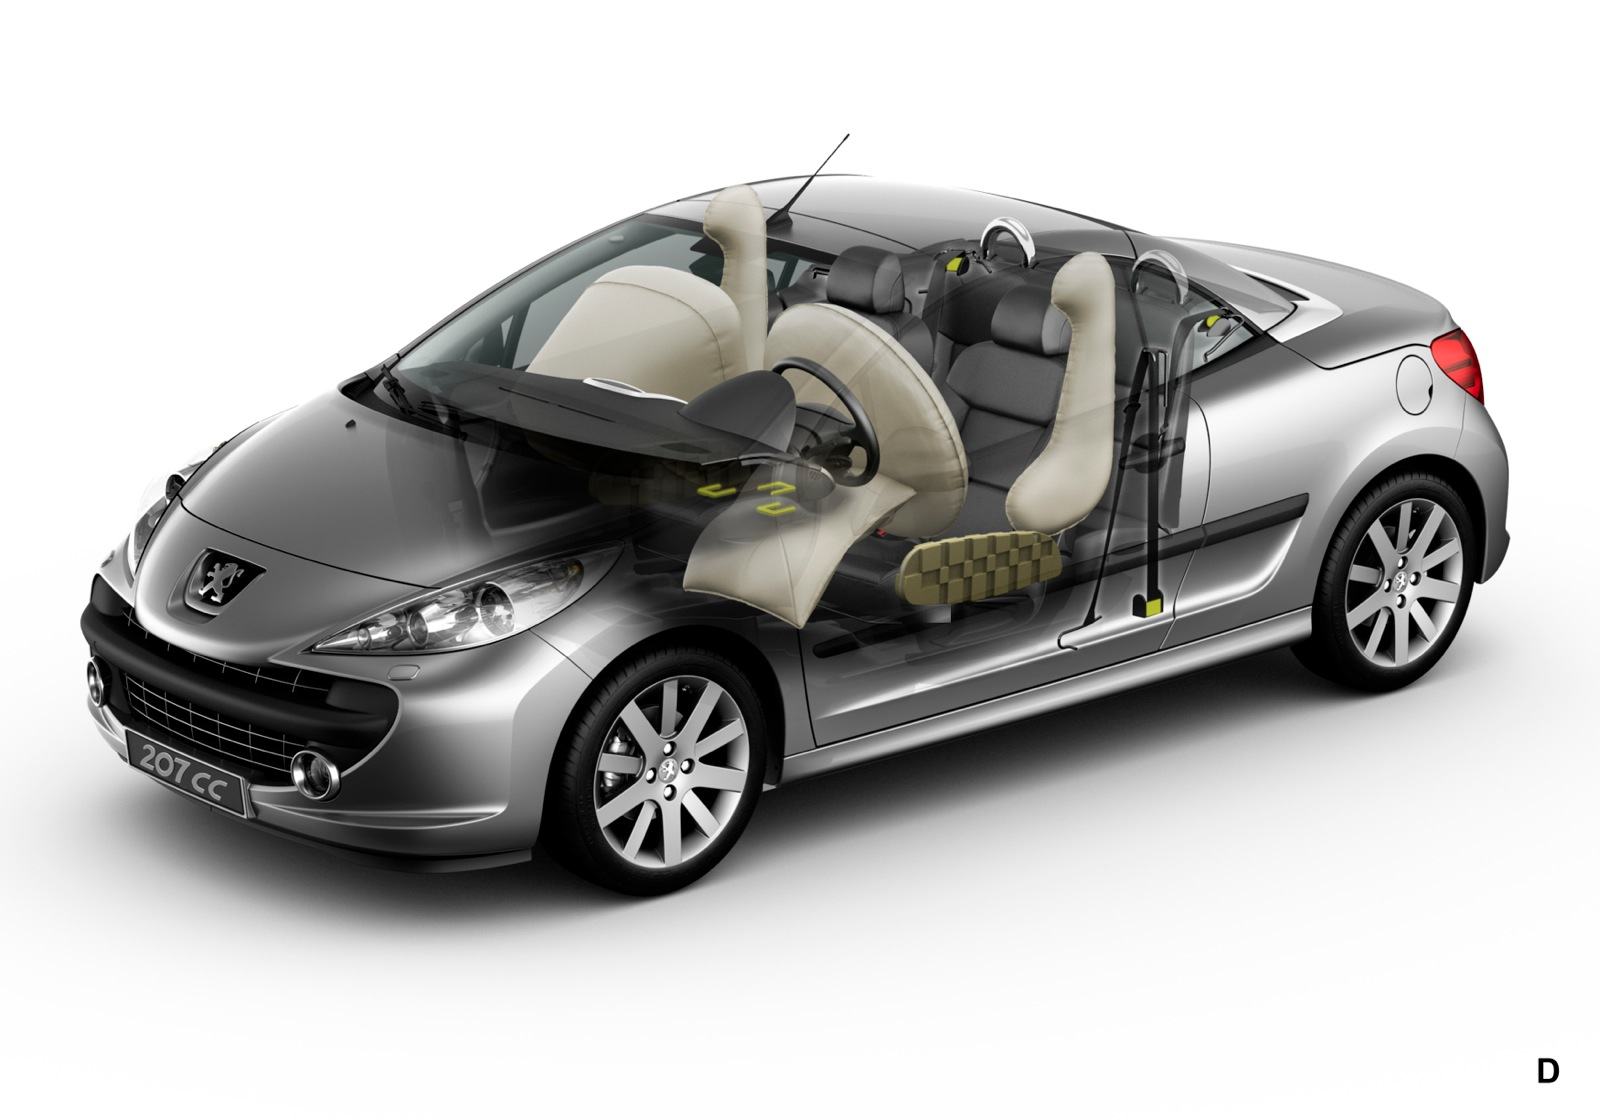 2009 peugeot 207 cc pictures information and specs. Black Bedroom Furniture Sets. Home Design Ideas